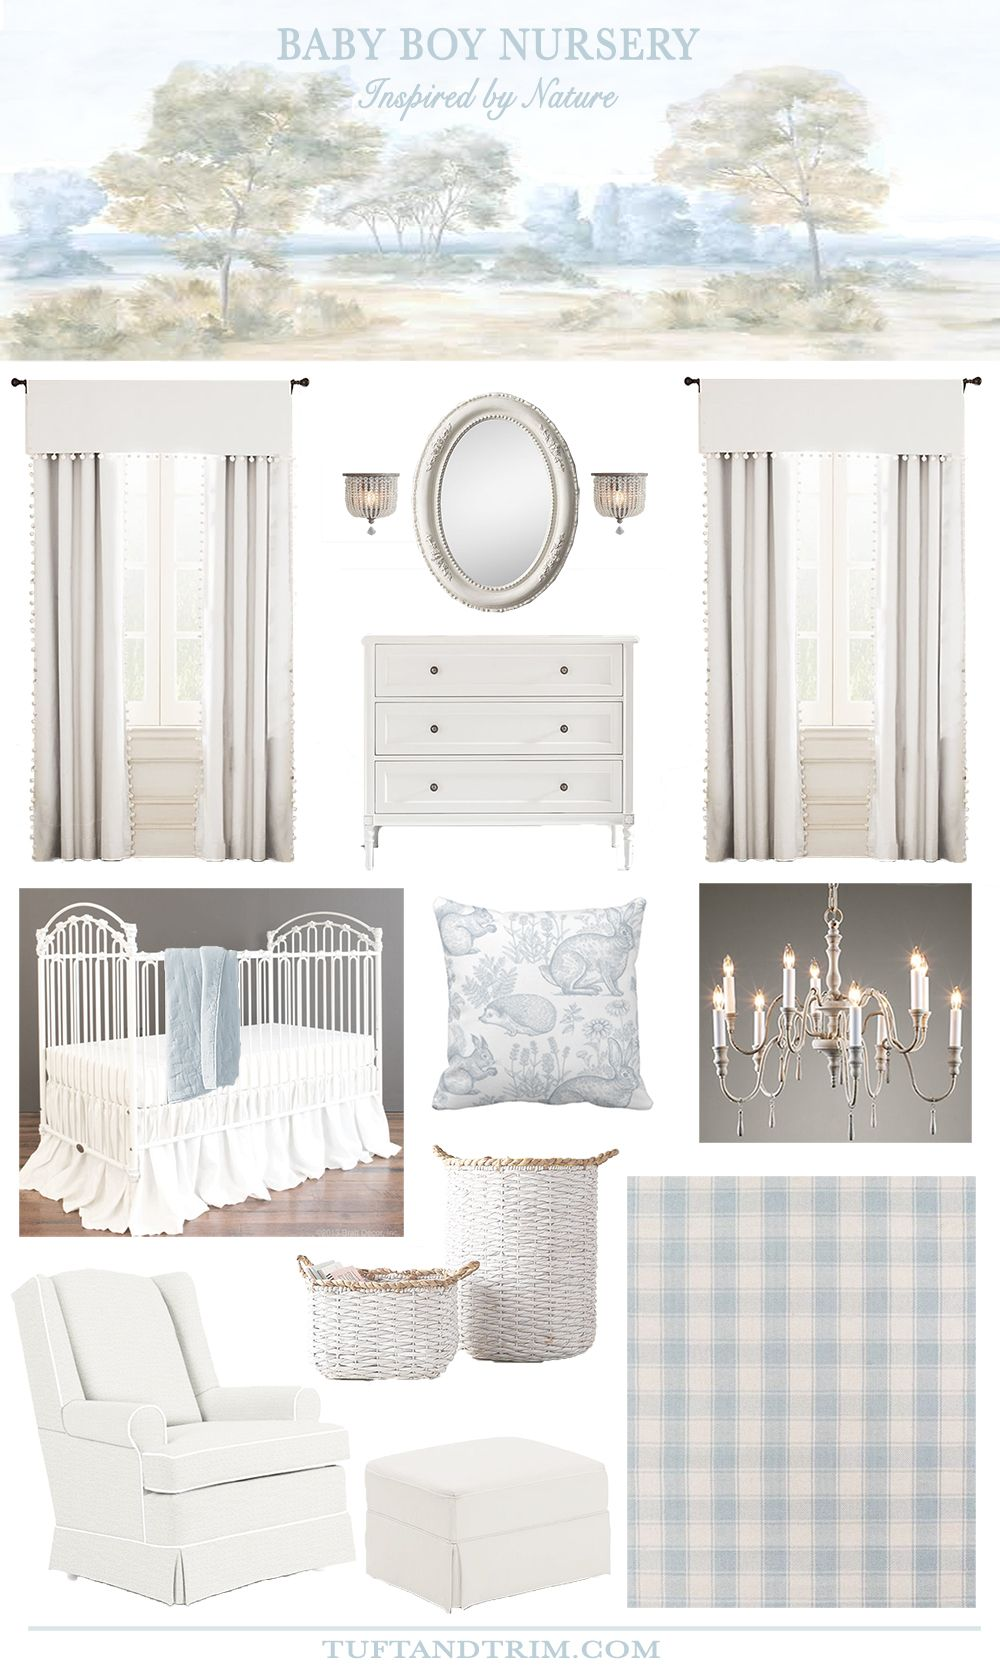 Baby Boy Nursery: Inspired by Nature - Tuft & Trim